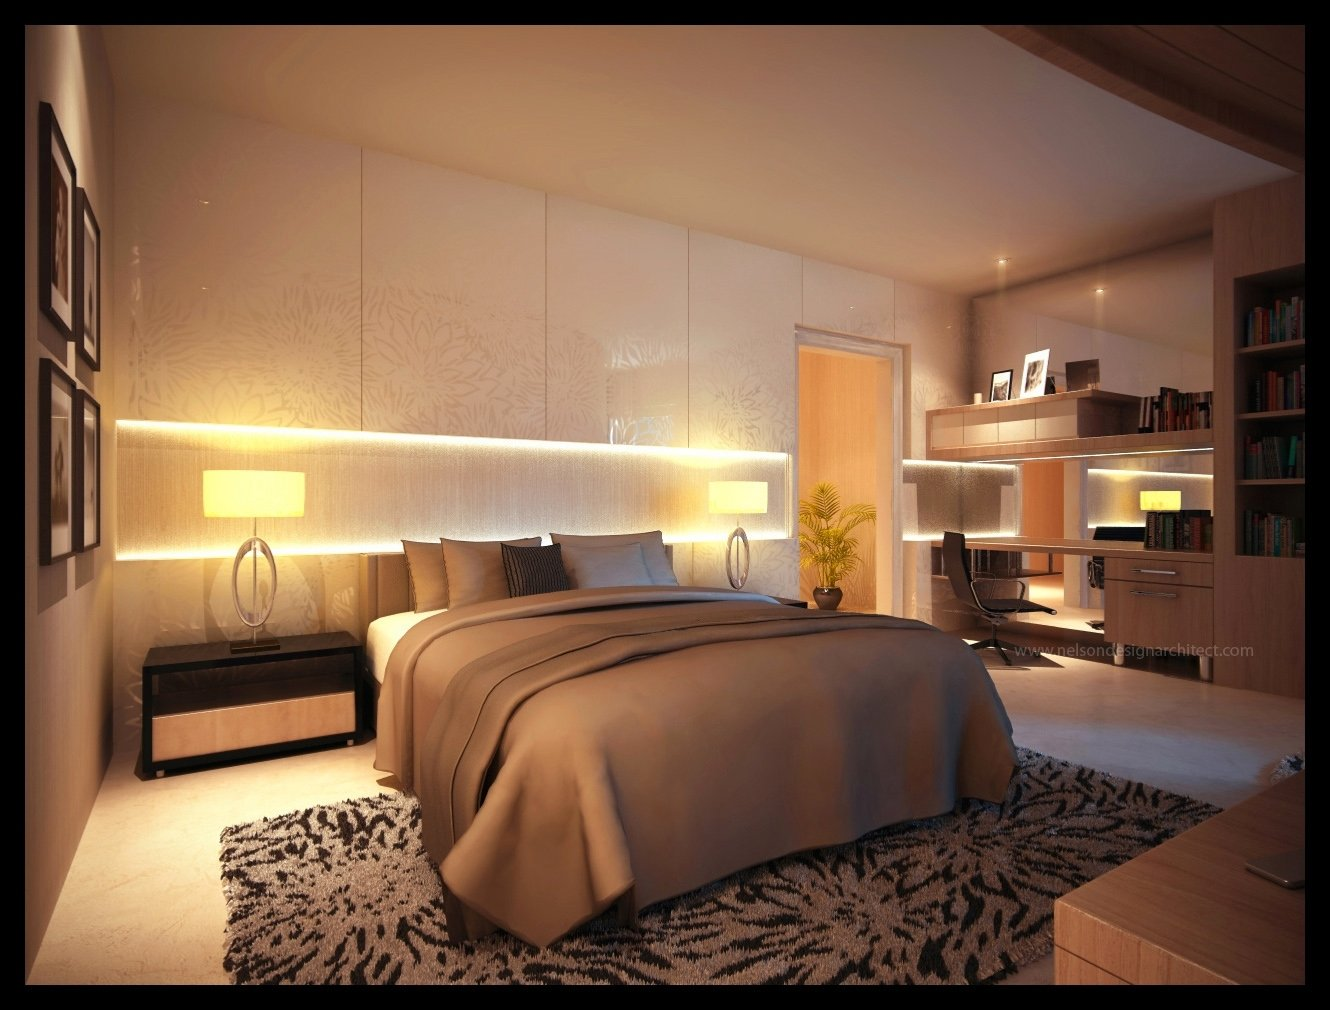 10 Lovable New Ideas For The Bedroom inspiring bedroom design ideas decobizz 2020